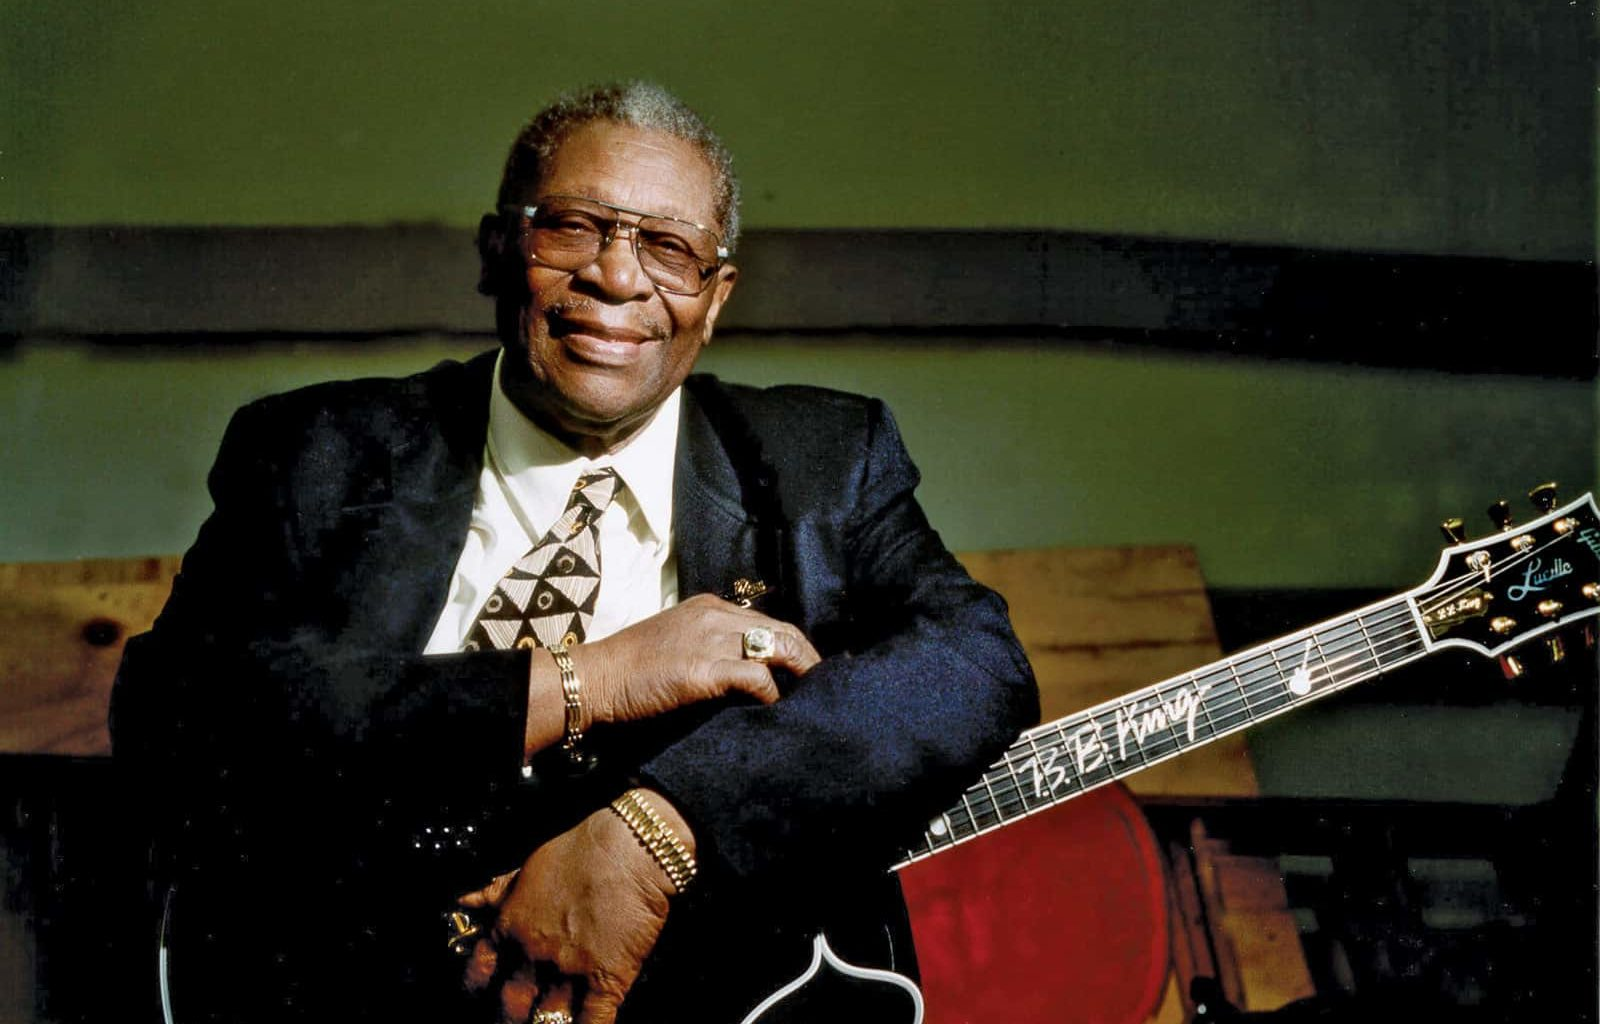 B.B. King Voice Of The Blues And America